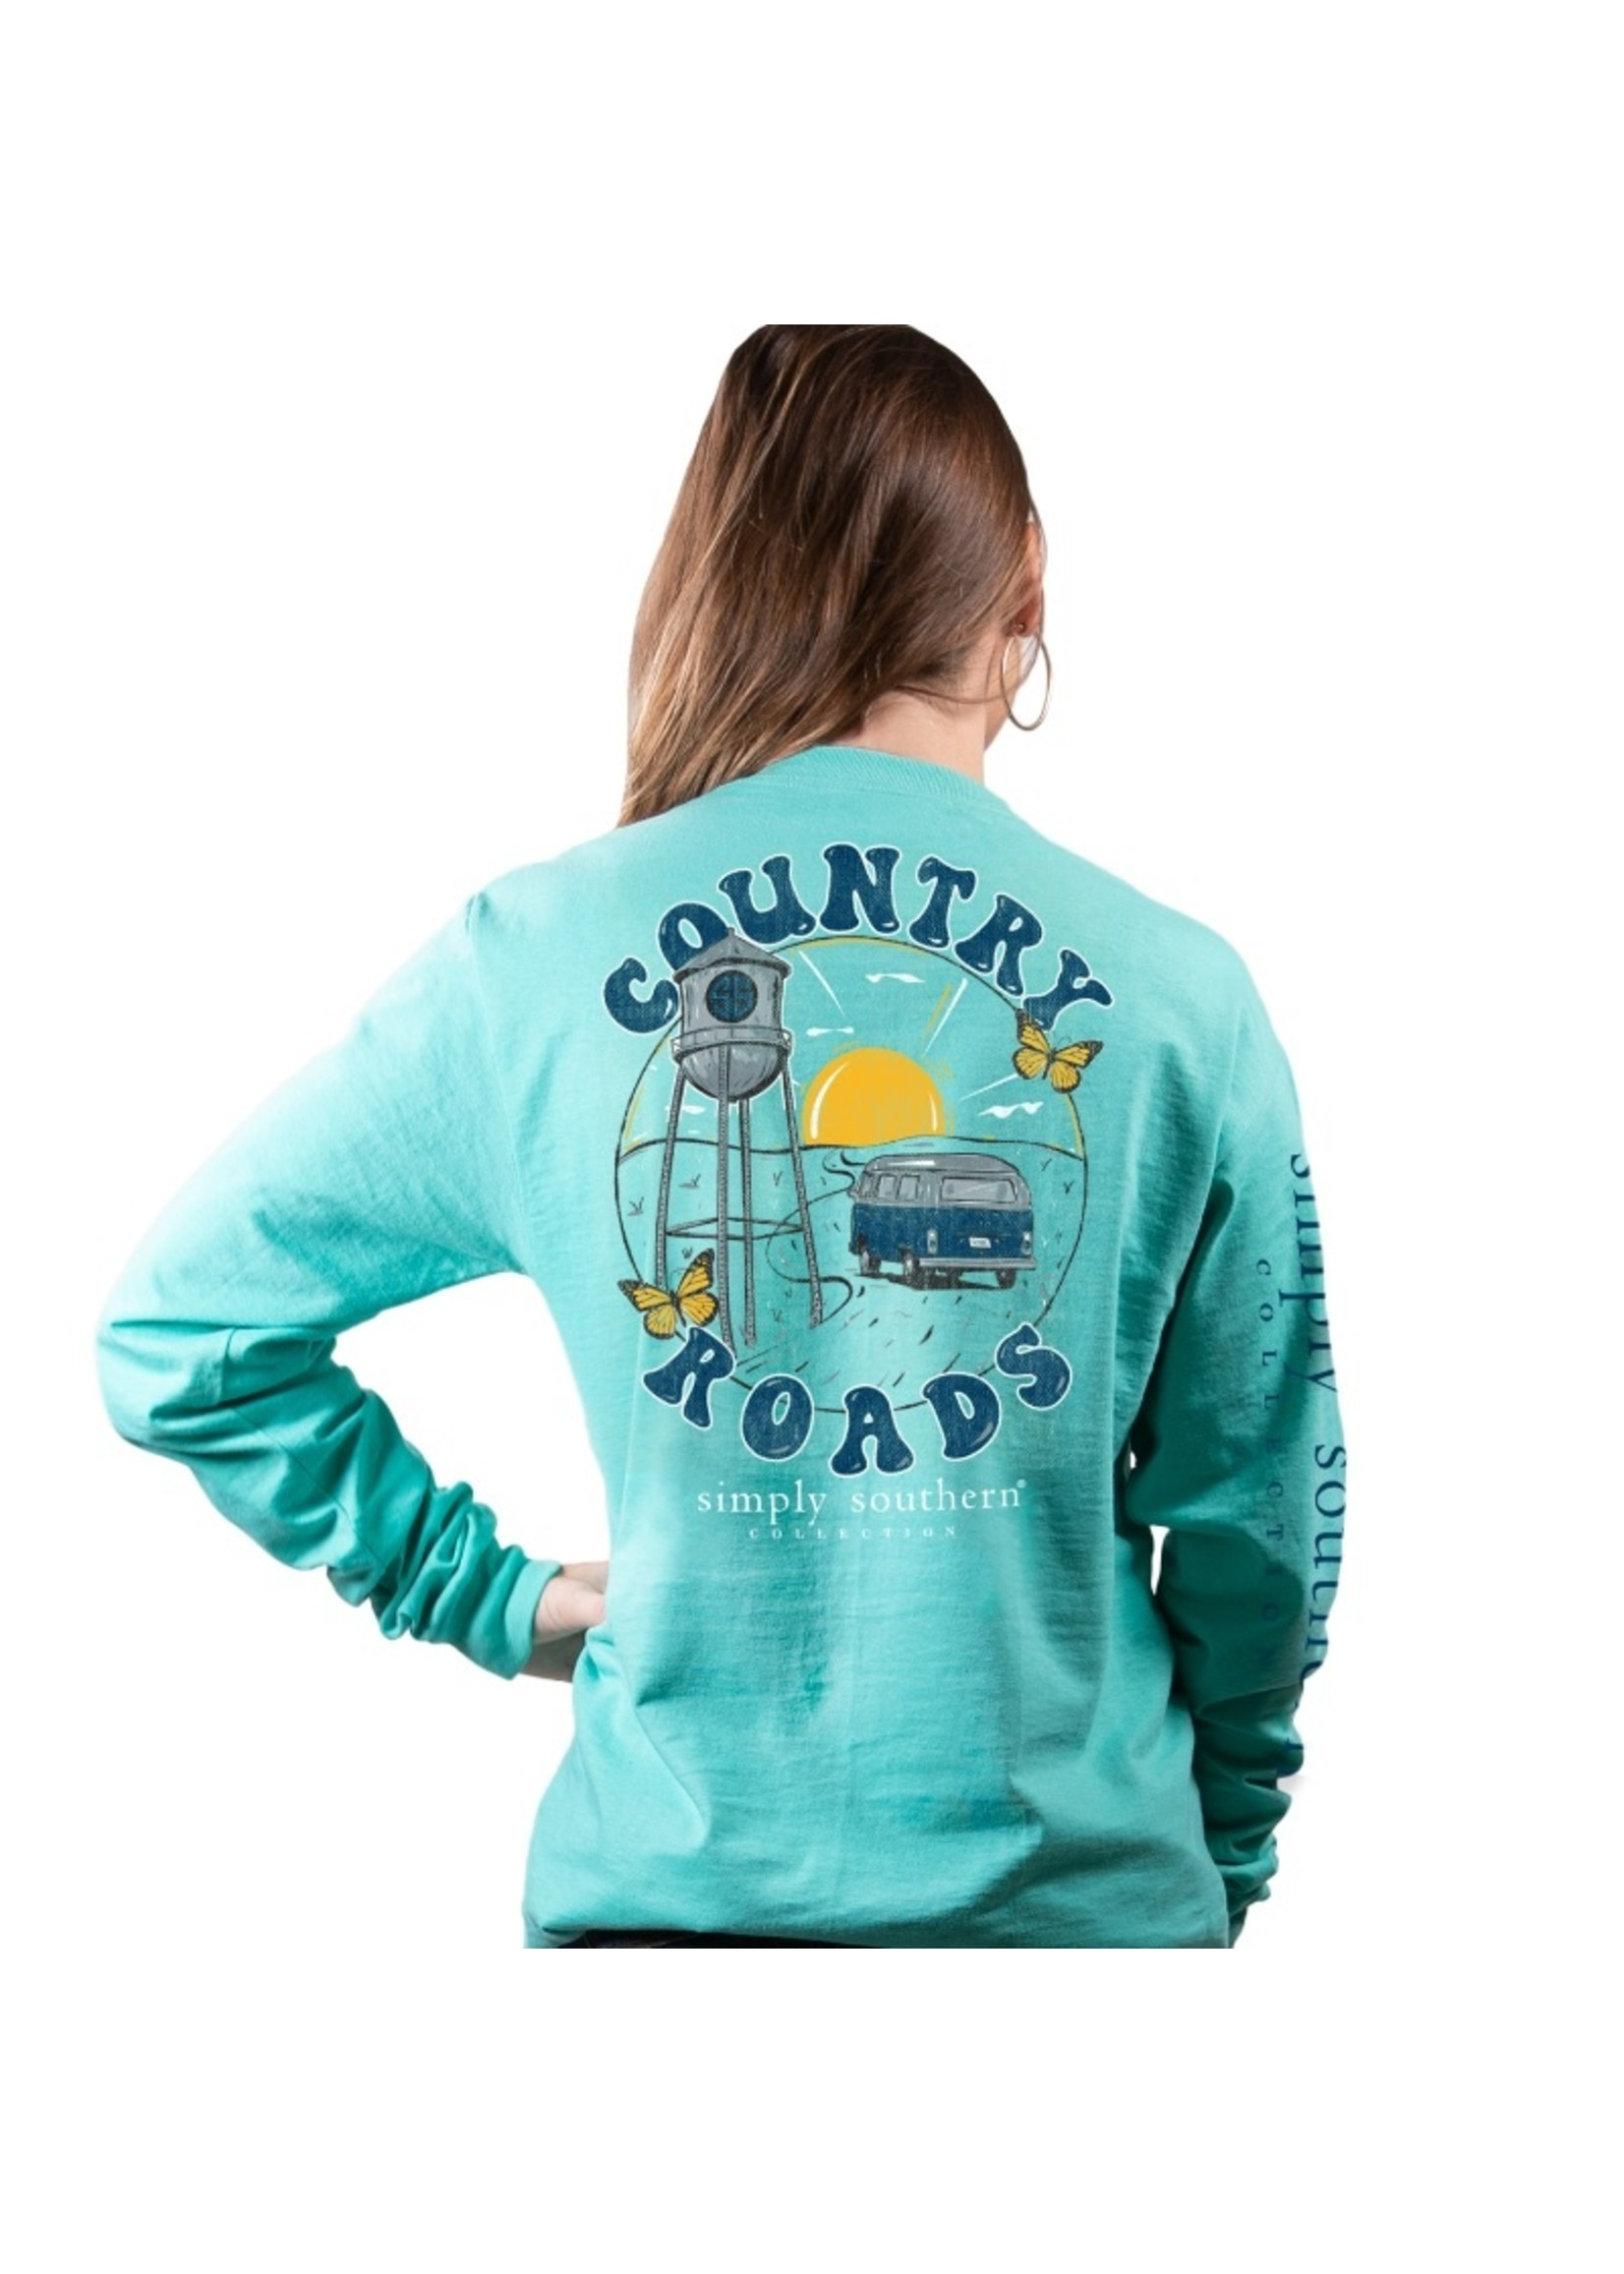 Simply Southern Collection Country Roads Long Sleeve T-Shirt